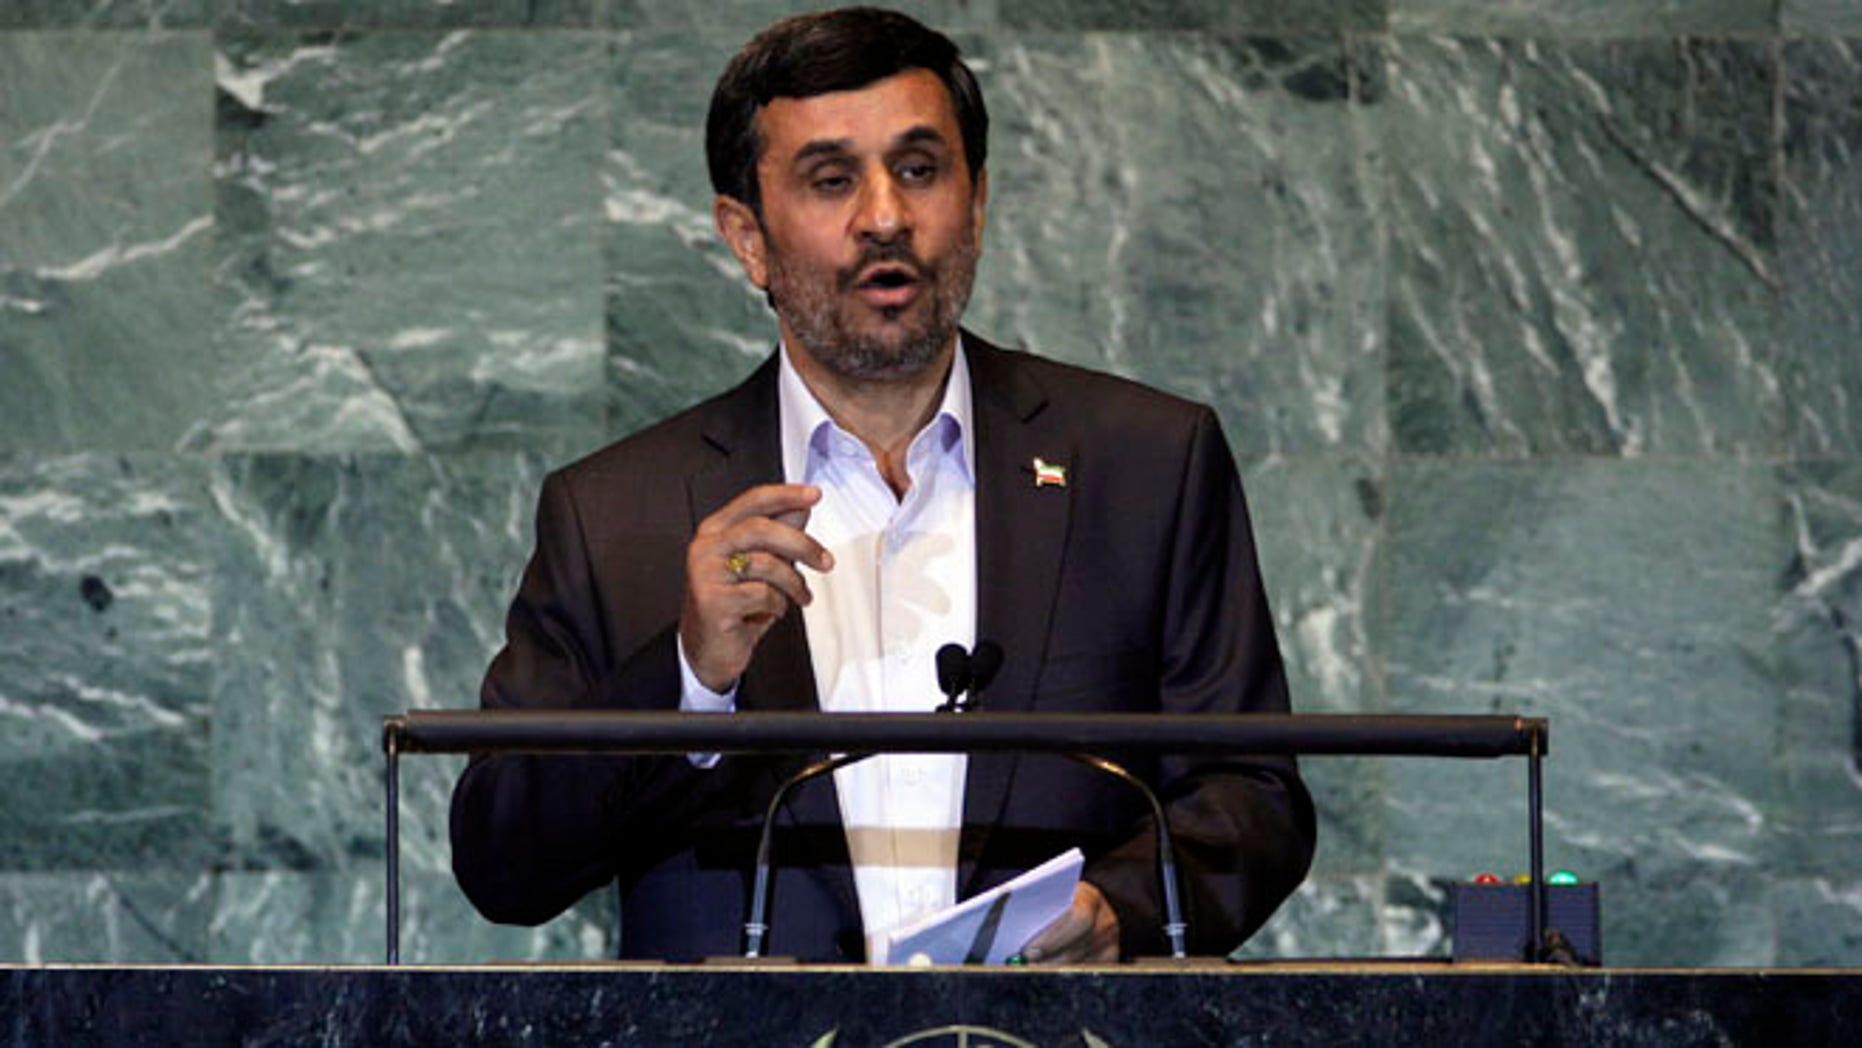 Sept. 22, 2011: In this file photo, Iran's President Mahmoud Ahmadinejad addresses the 66th session of the United Nations General Assembly.